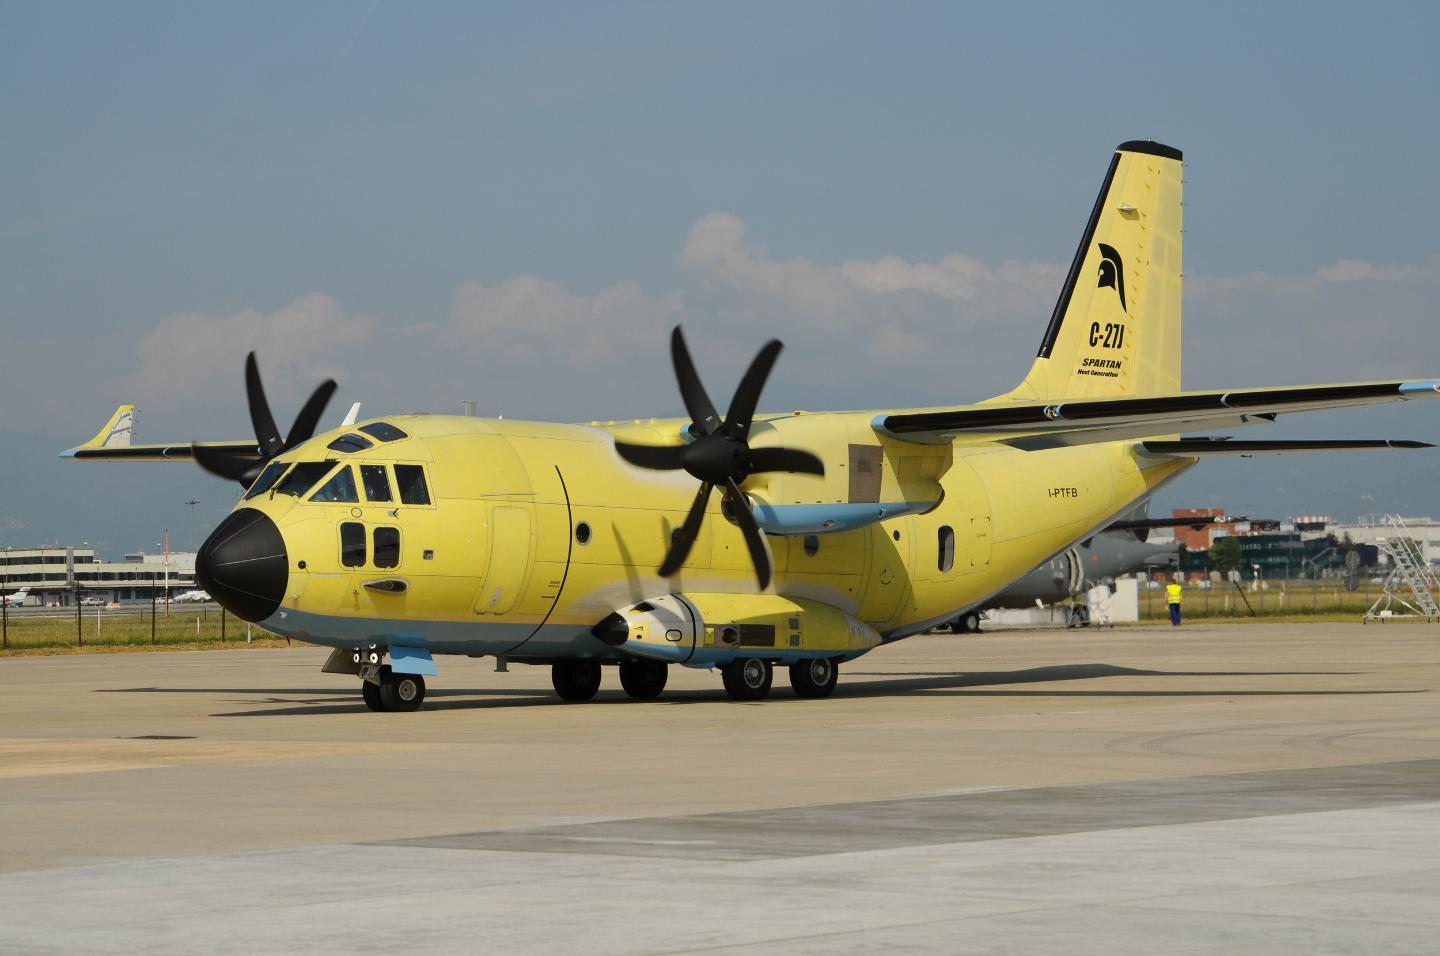 C-27J Spartan Next Generation